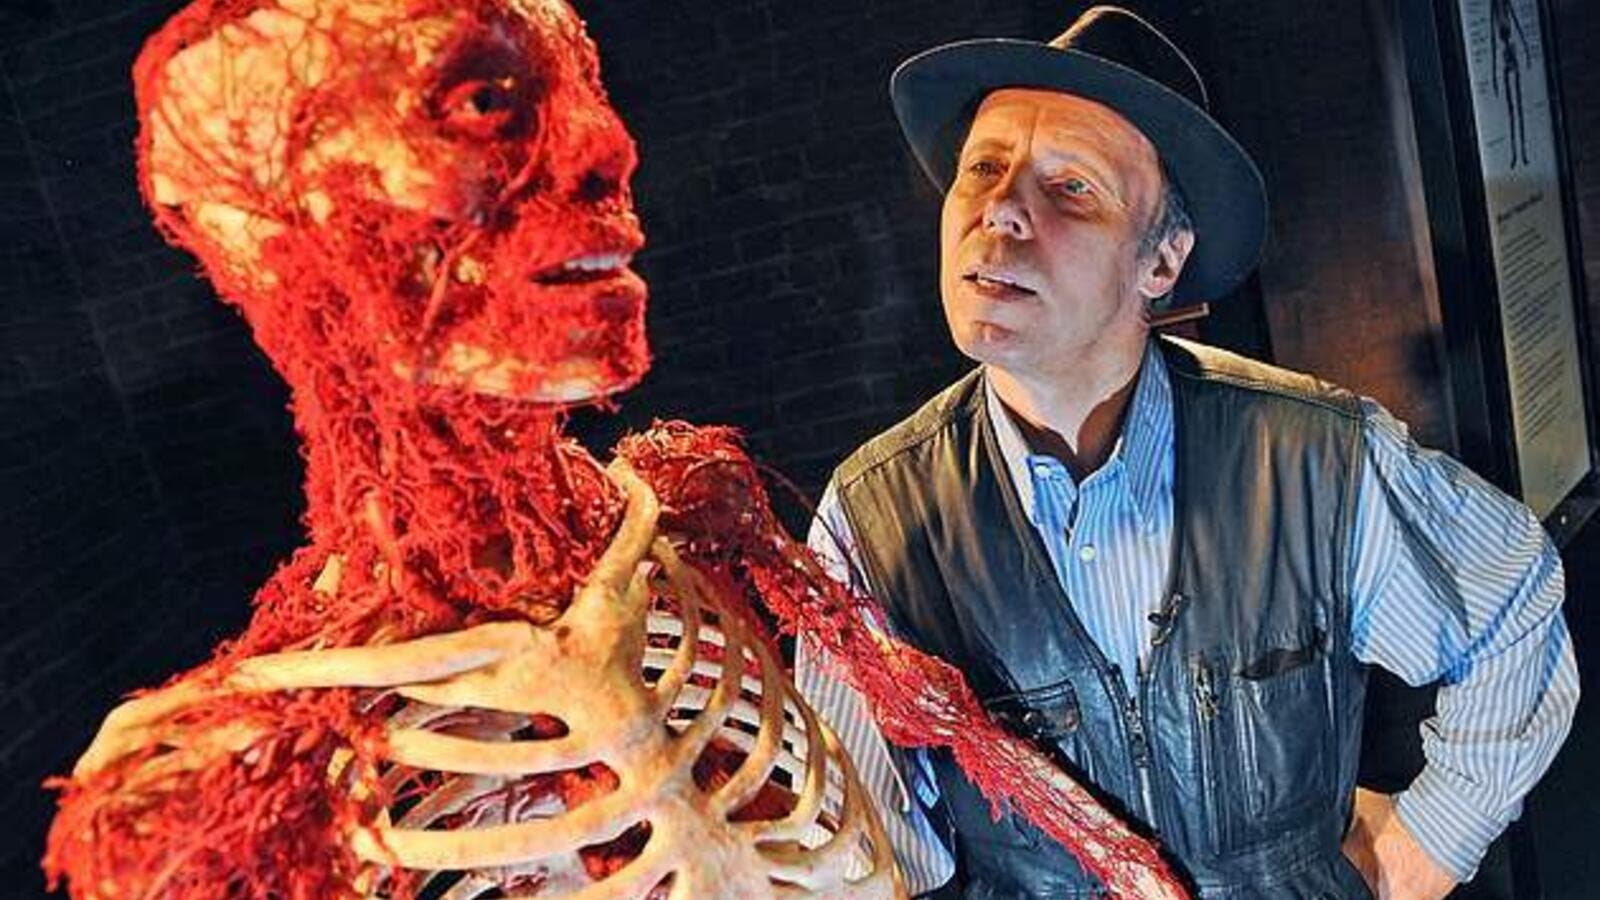 His wife revealed how Von Hagens wants to become part of his latest Body Worlds exhibition, which is due to open to the public in London this week (Shutterstock)